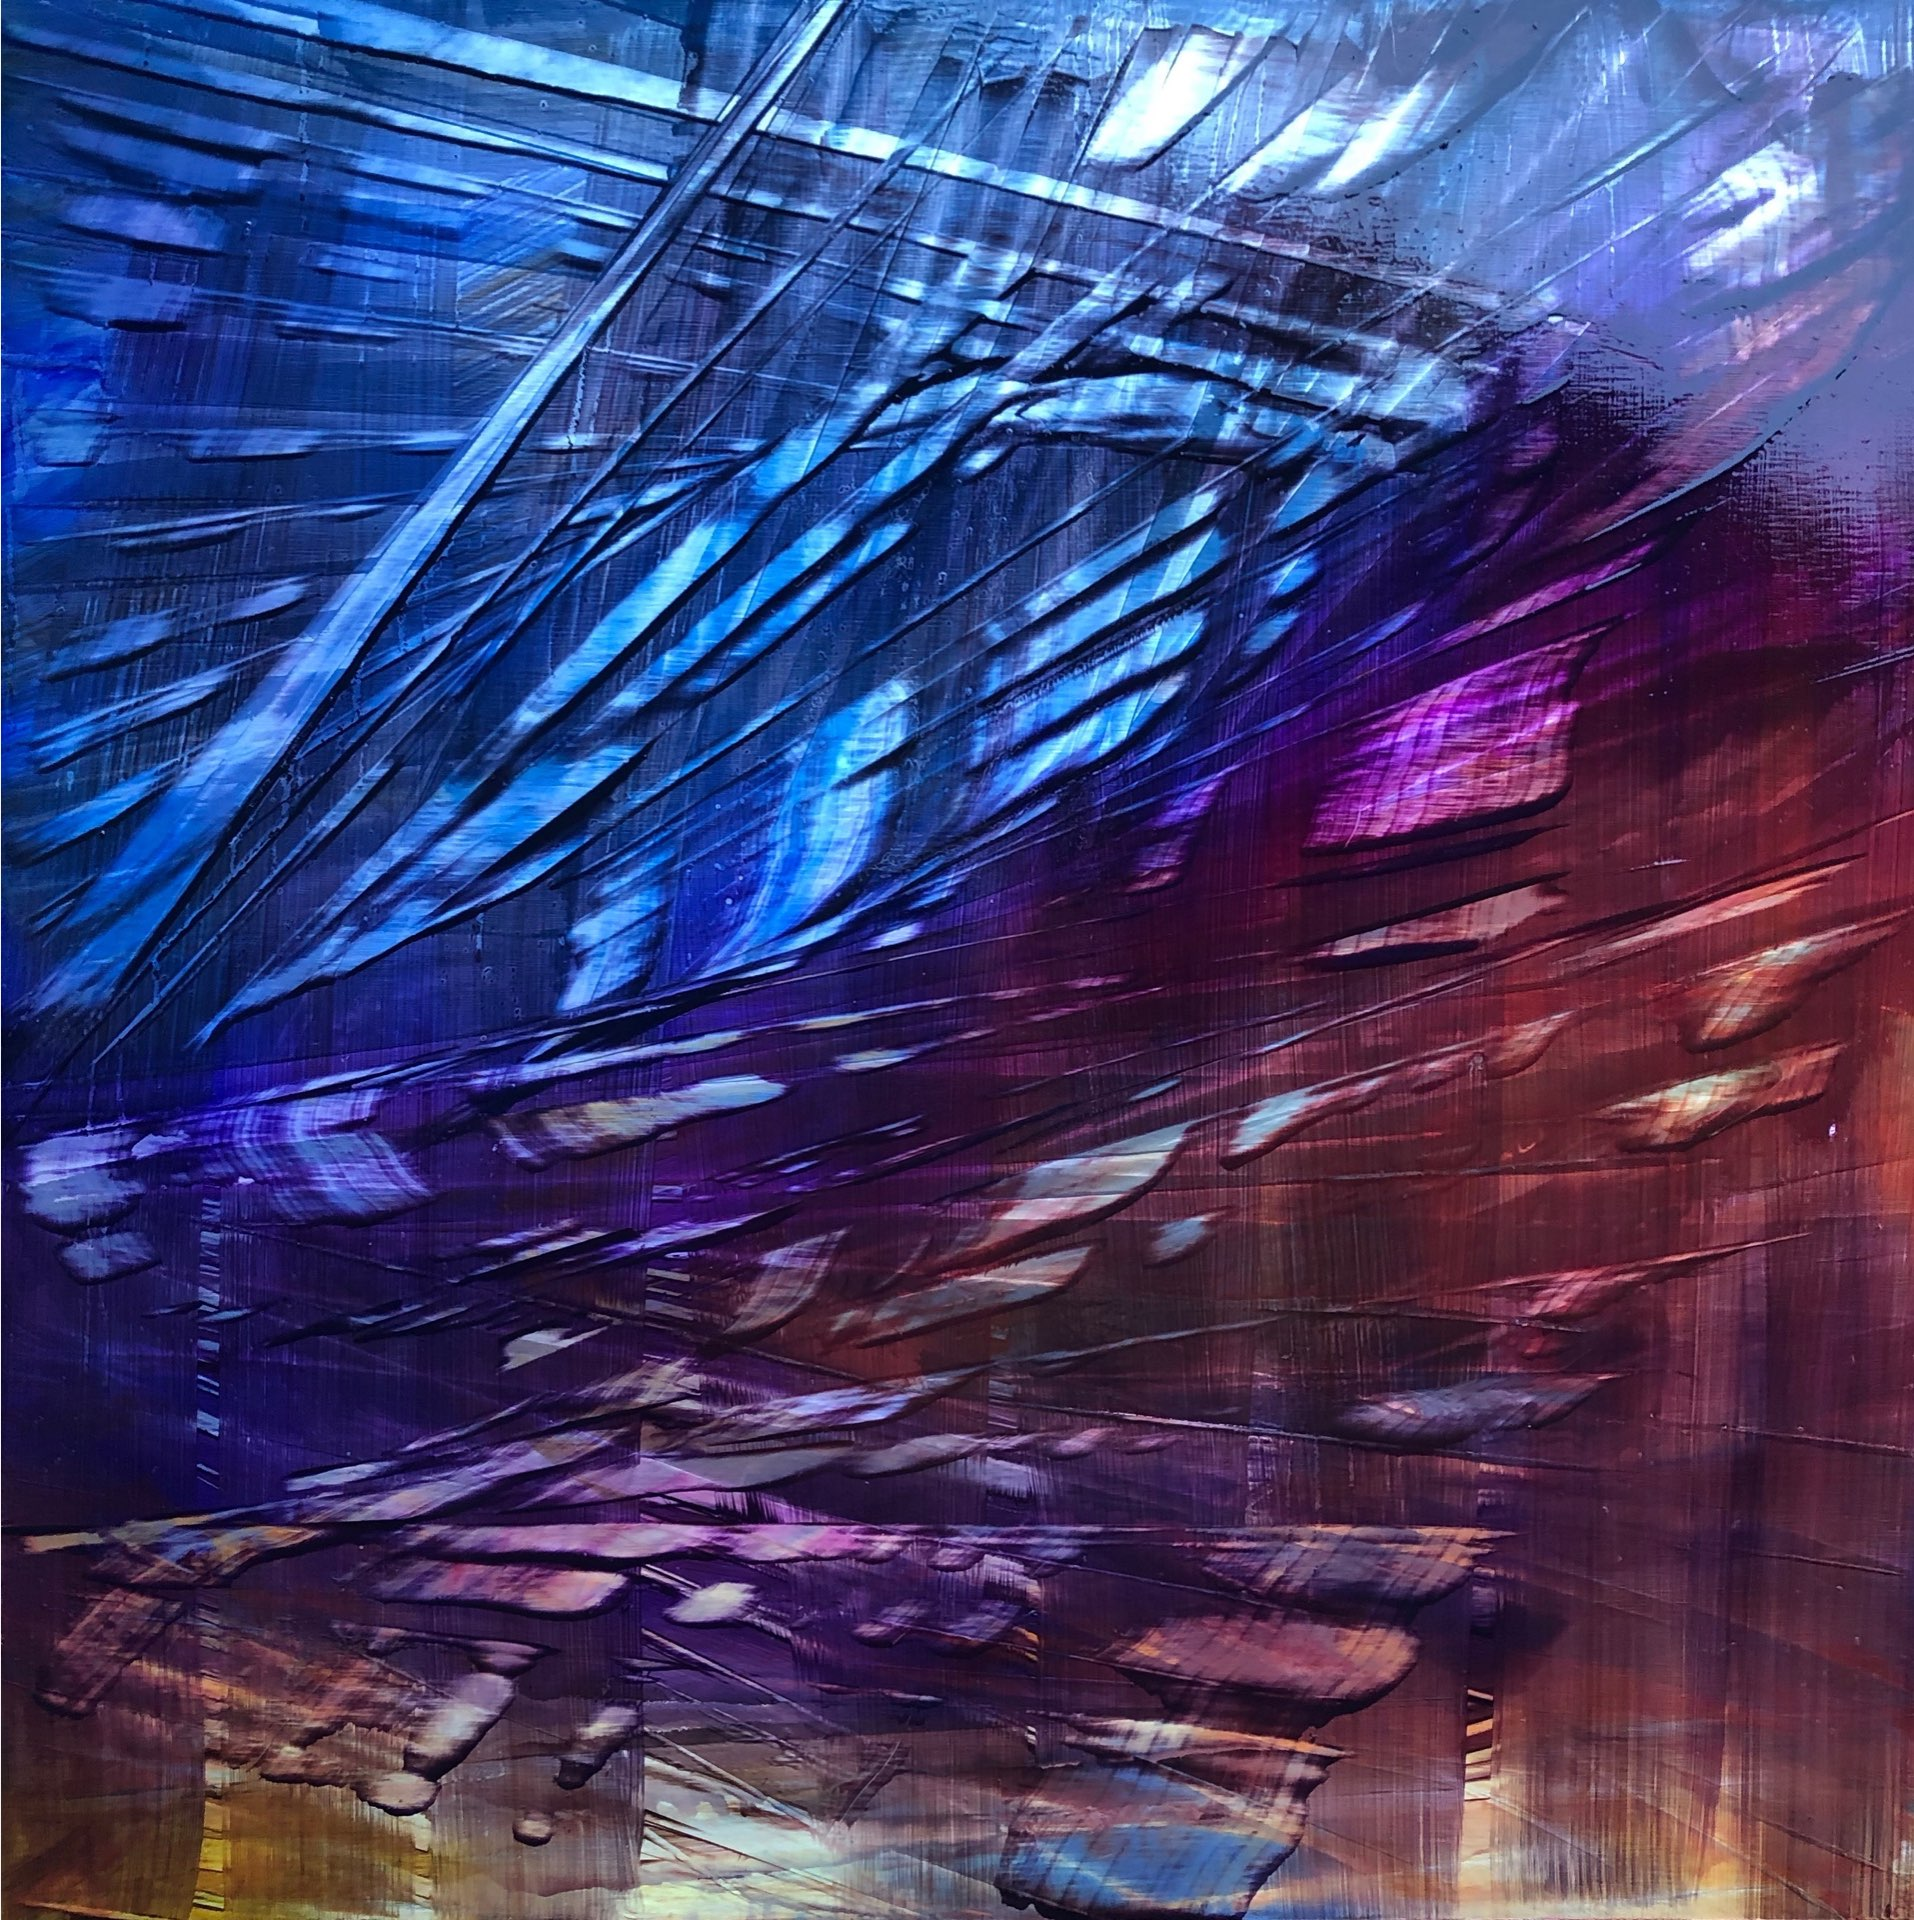 Butterfly Wings, Contemporary oil painting on metal, abstract wings of a butterfly, Fine Art by Cynthia McLoughlin